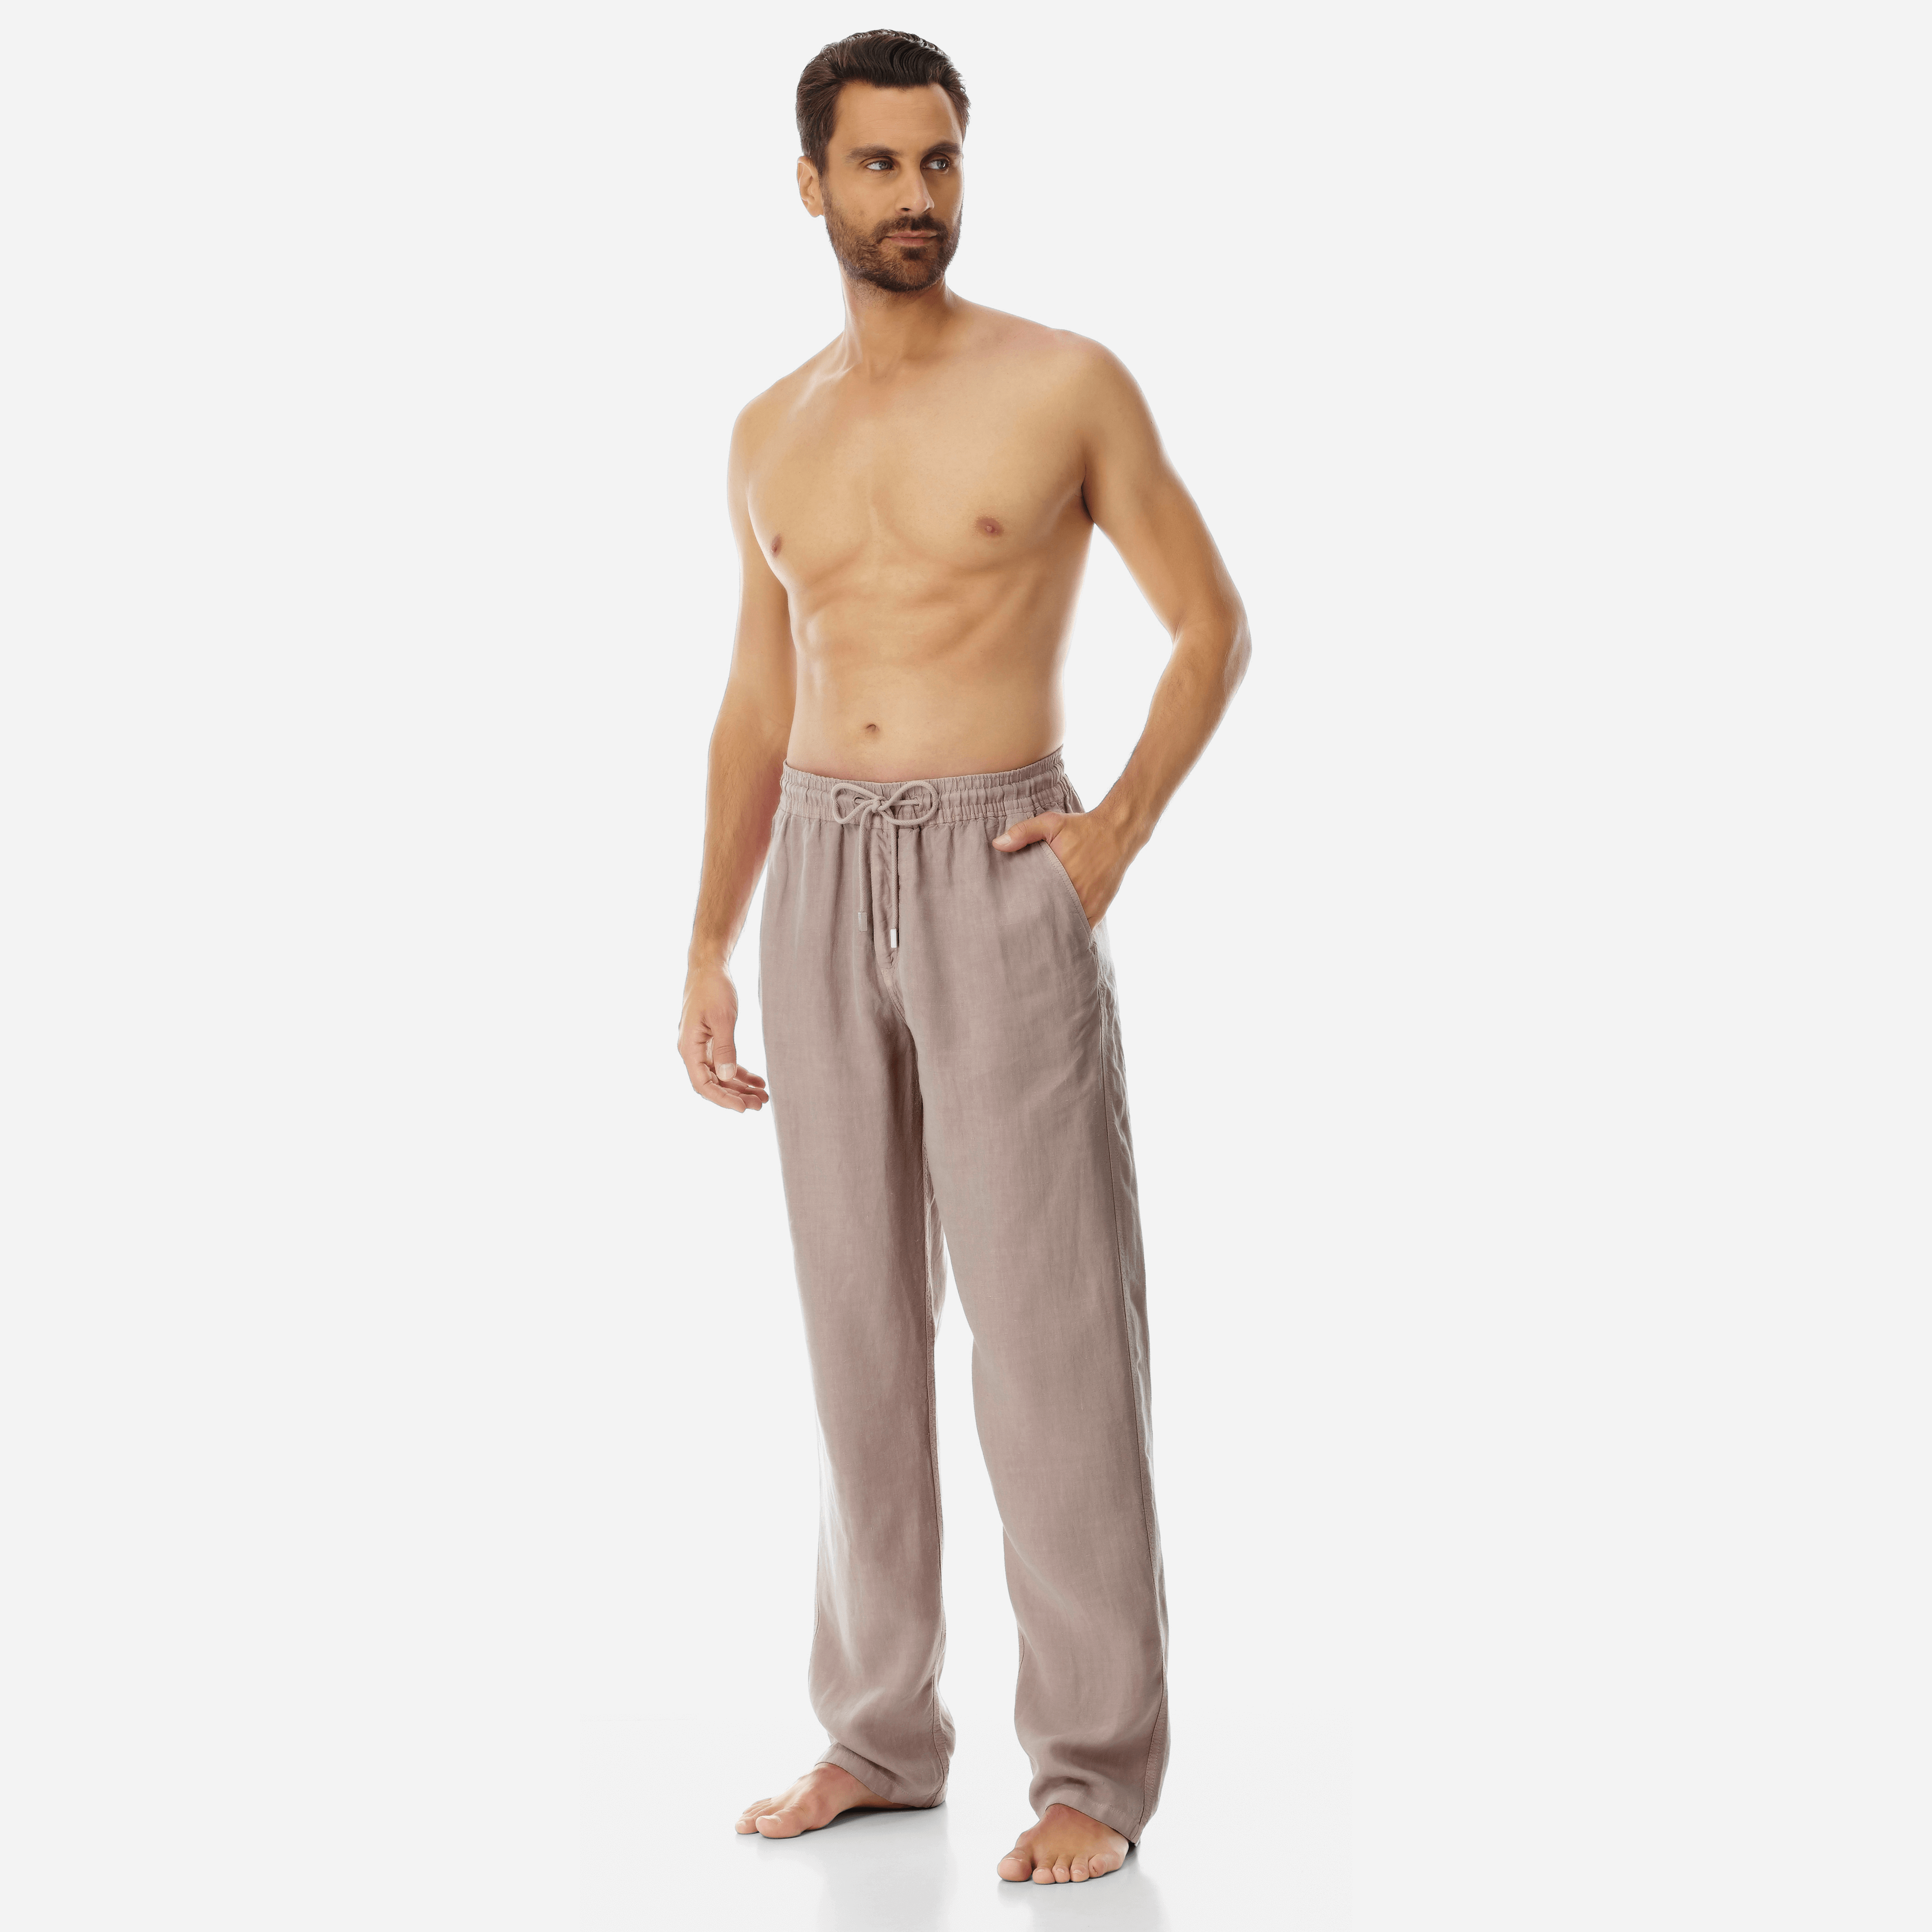 f08d8f7e What Shirt Goes With Mens Linen Pants